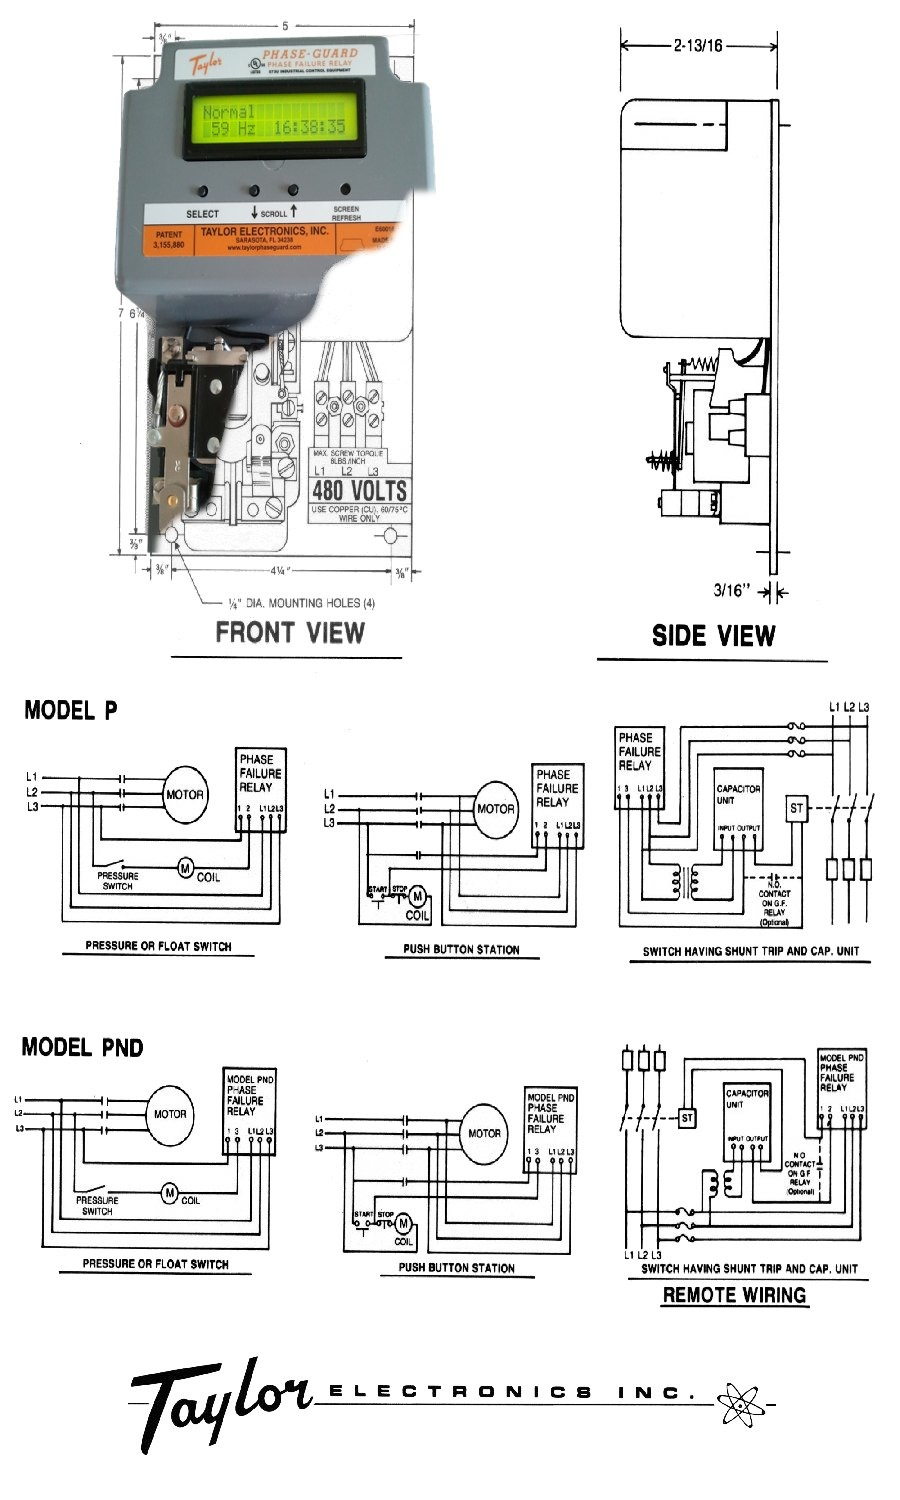 medium resolution of wiring diagram taylor electronics inc van dorn wiring diagram taylor wiring diagram